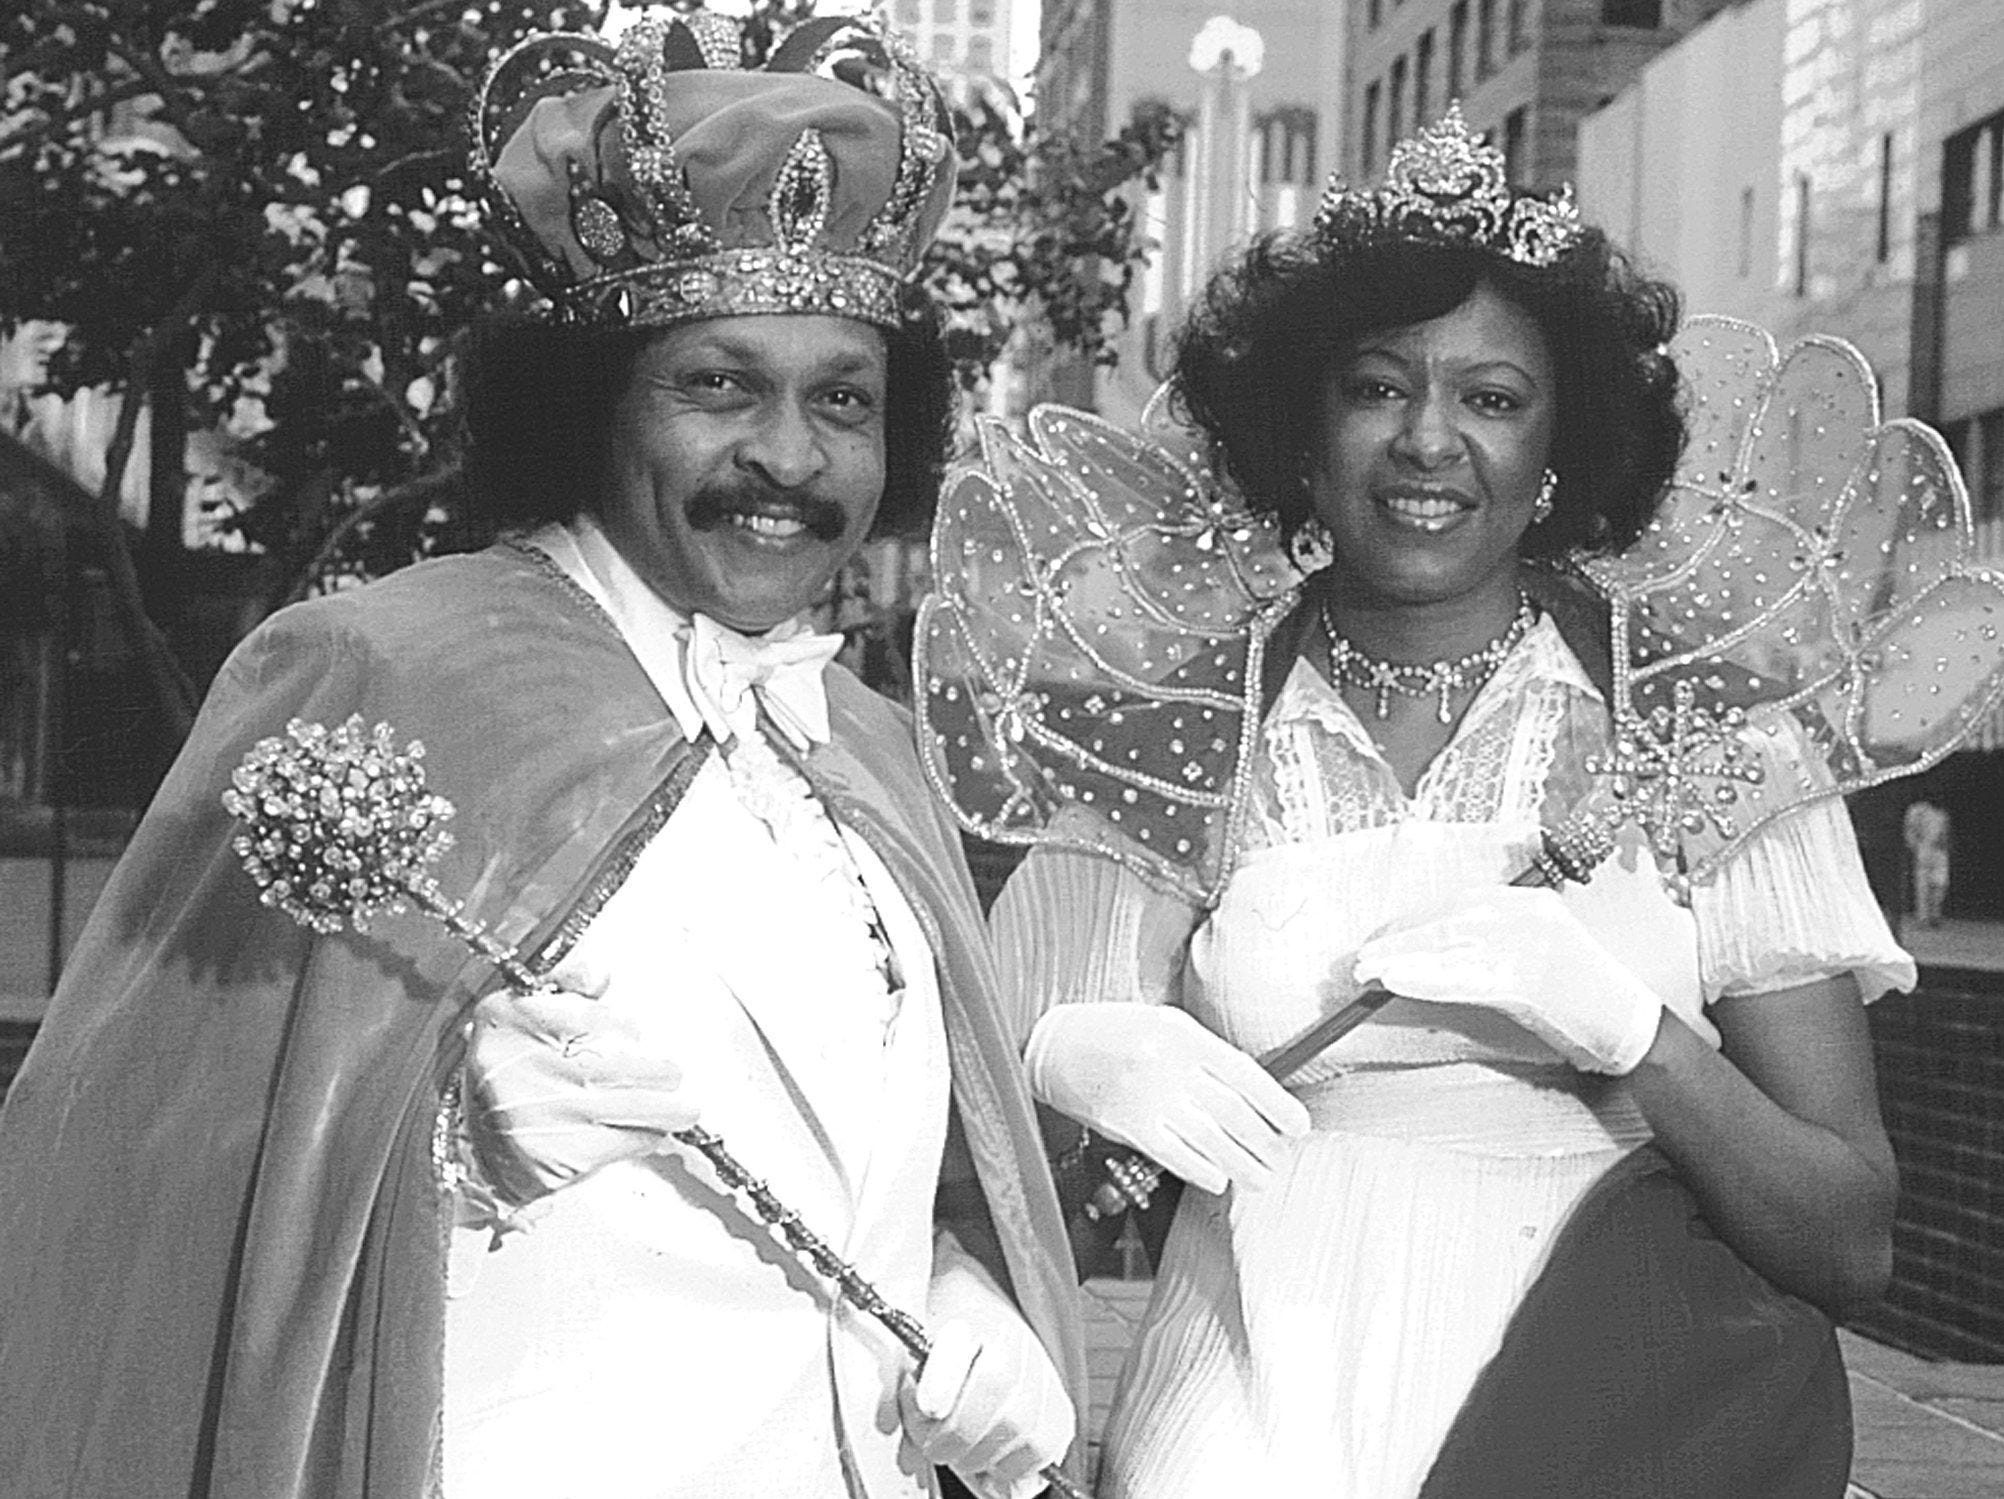 Randle Catron and Dorothy Jean Jackson, as king and queen of the Cotton Makers Jubilee, will be part of the sweeping changes in Cotton Carnival's structure for 1981.  Cotton Makers join six former secret societies - Memphi, Osiris, Ptah, Ra-Met, Shelbi and Sphinx - and the Grand Krewe of the Nile, the newest carnival organization as carnival grand krewes.